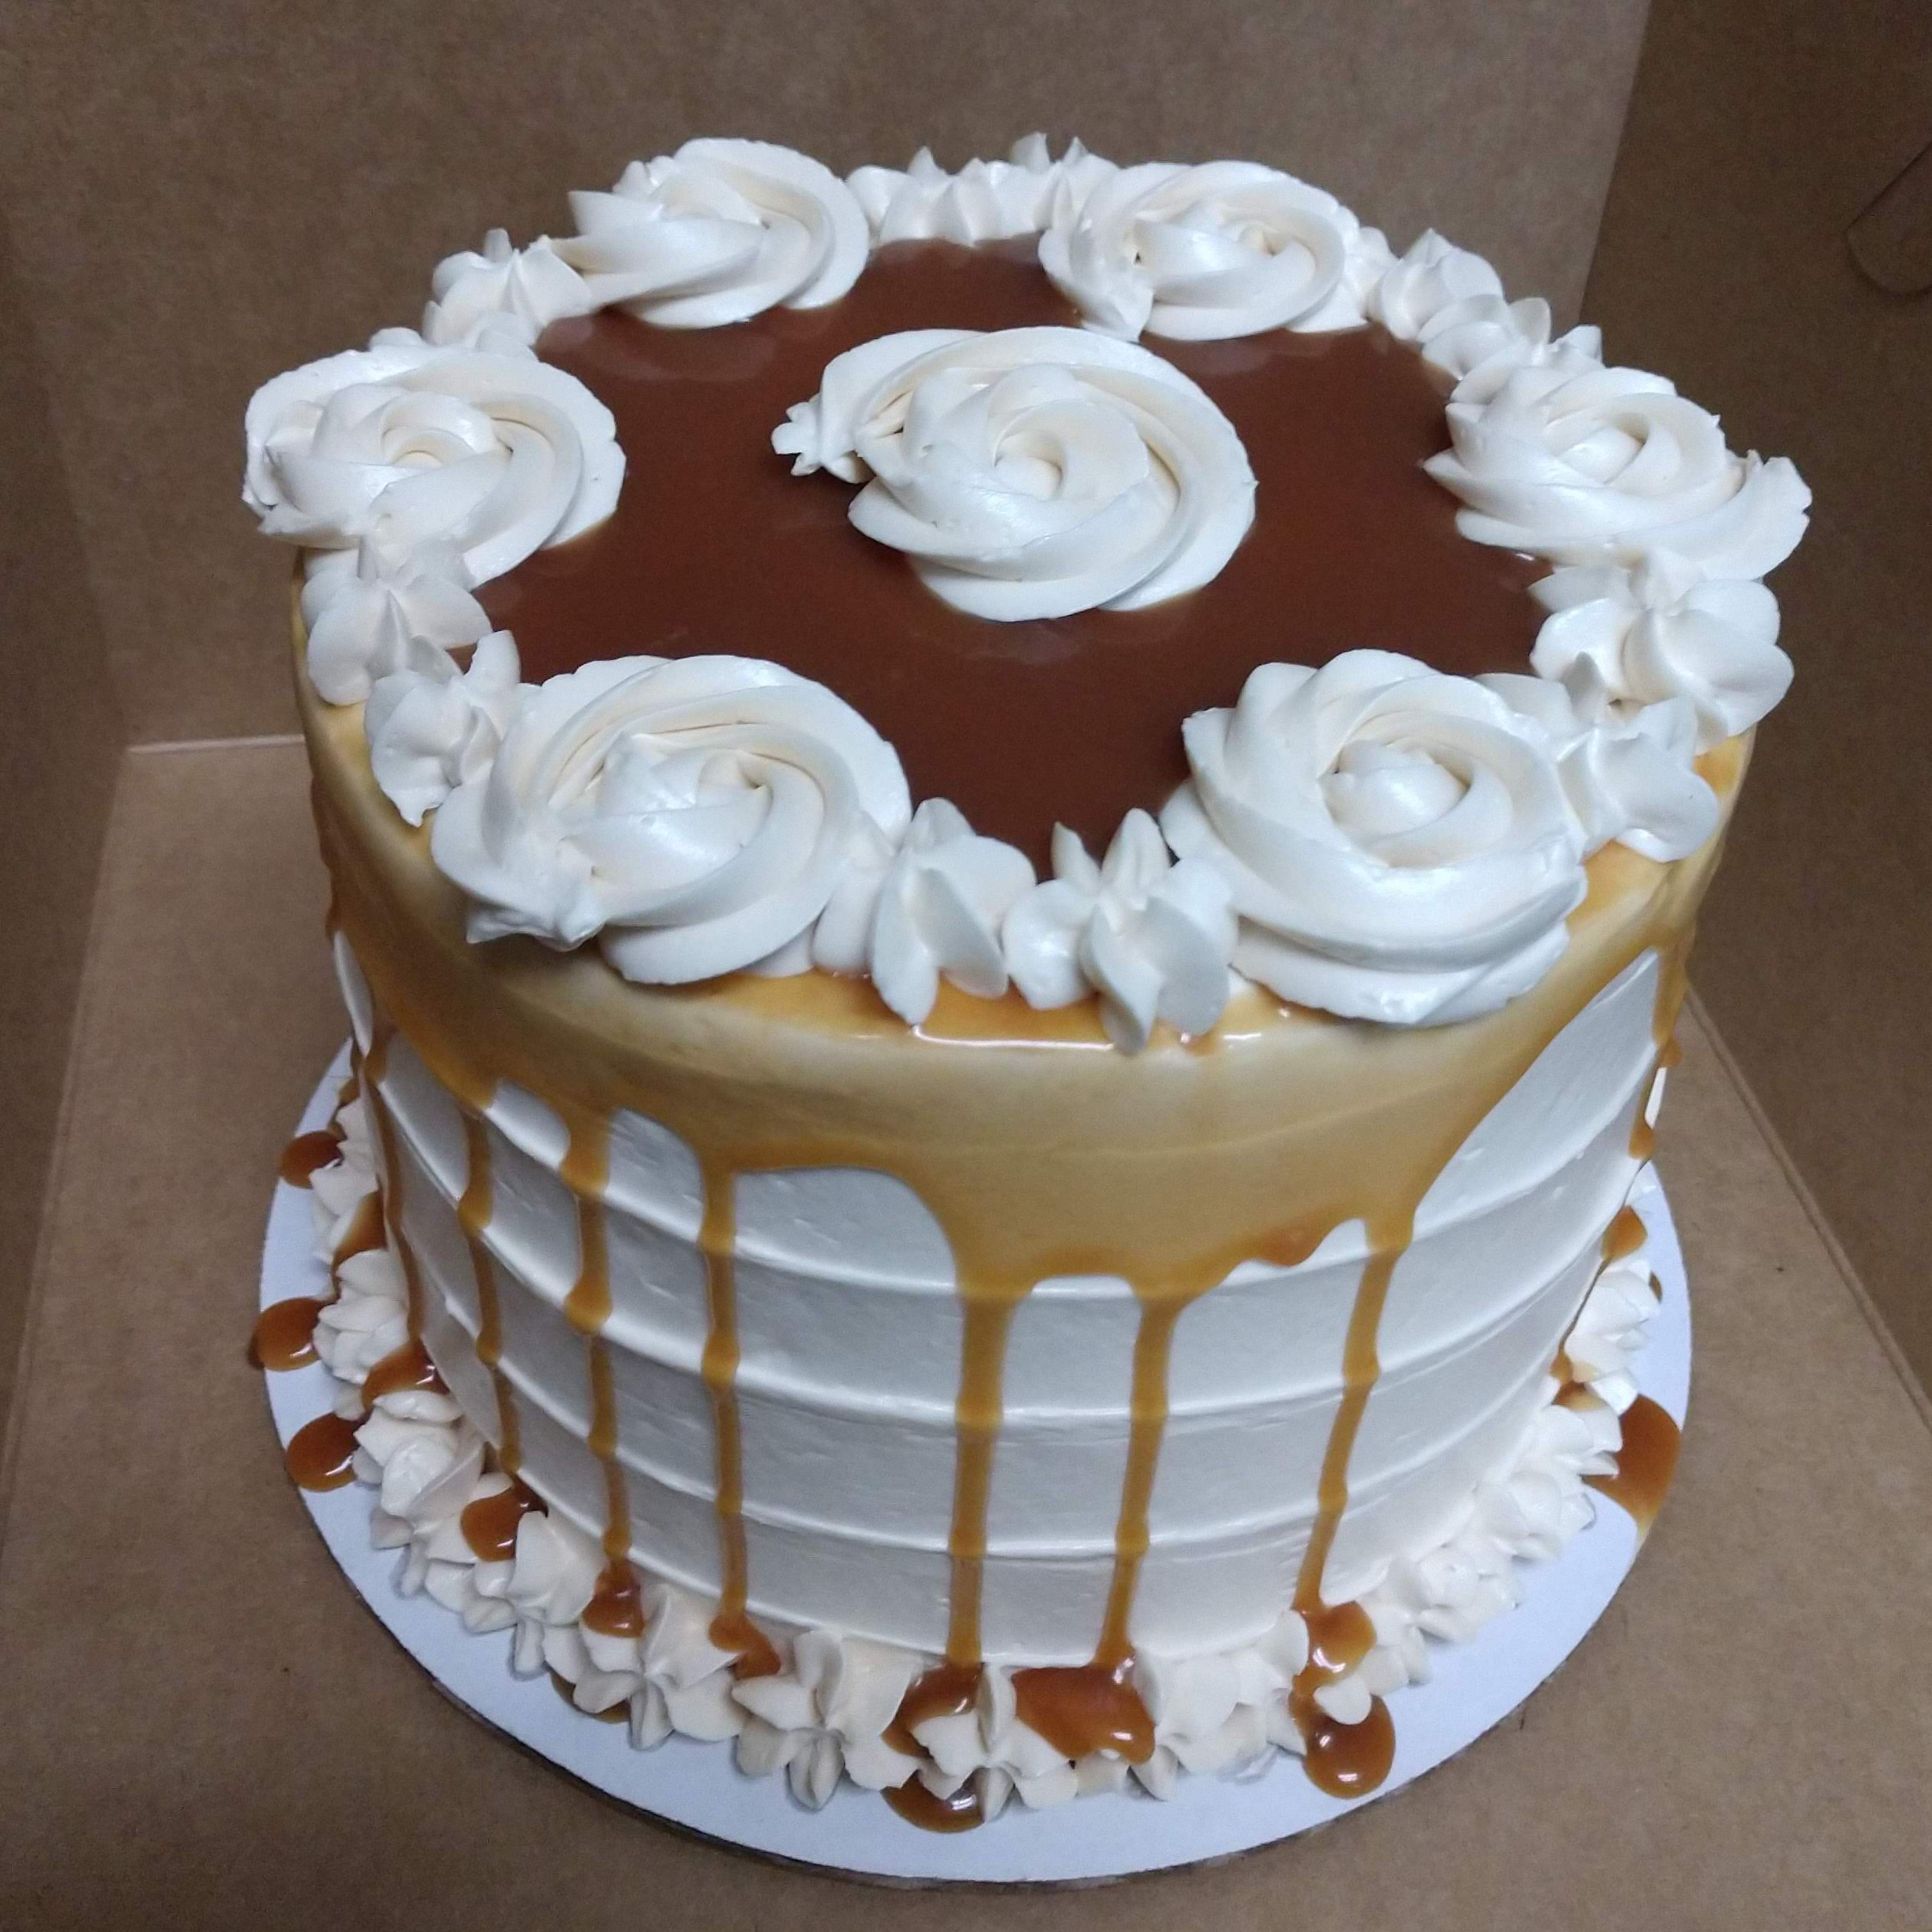 6in cake with vanilla buttercream with caramel drizzle